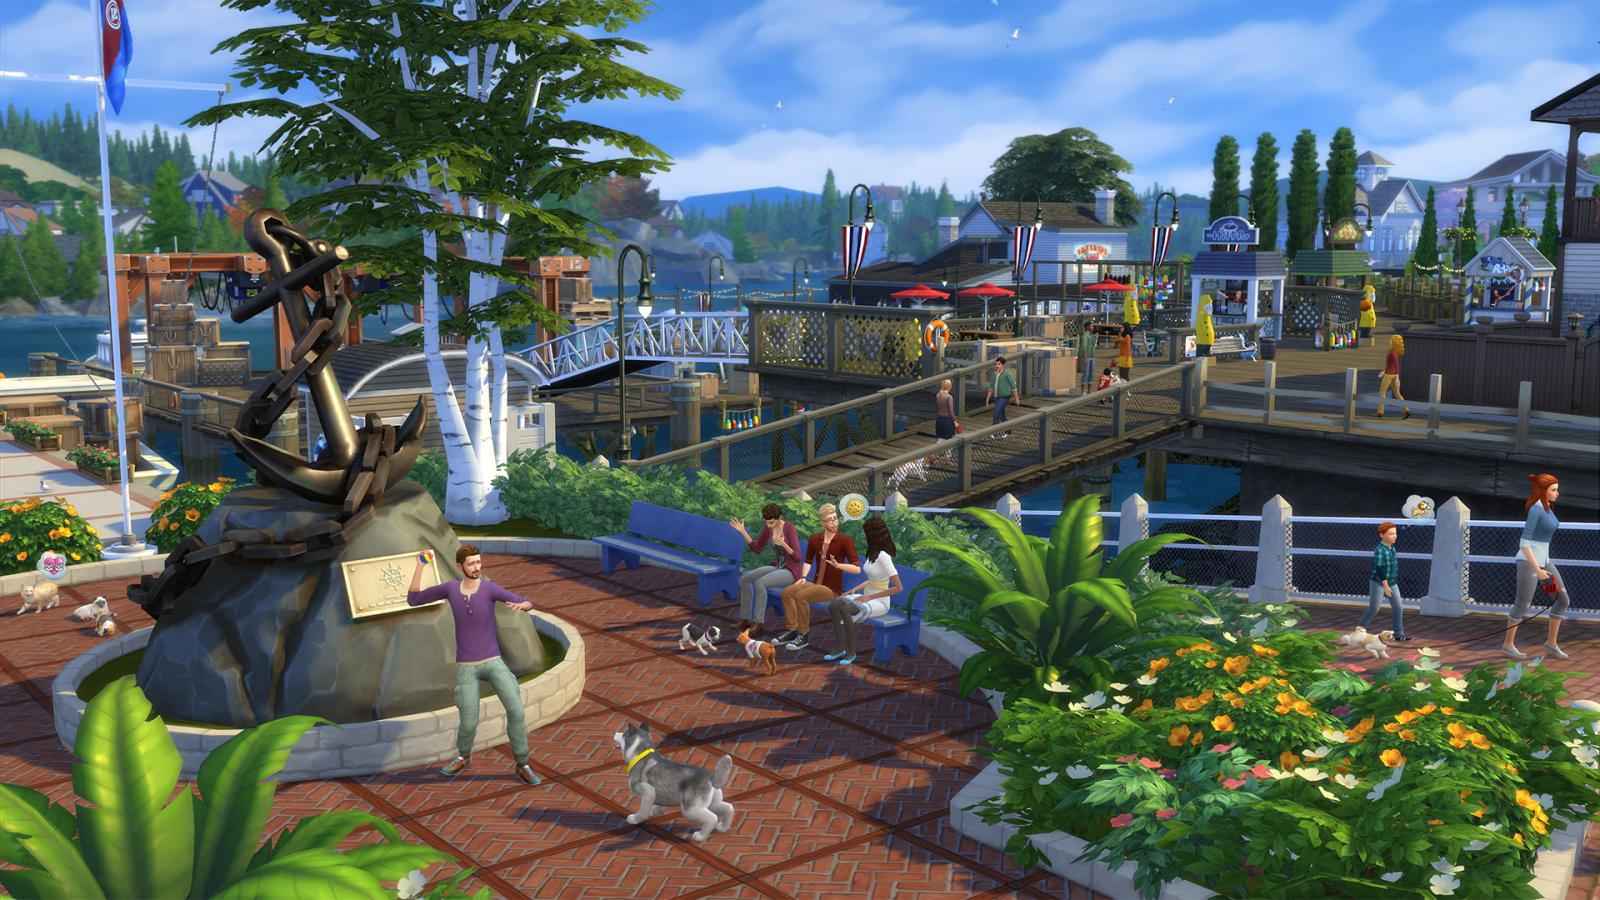 Sims-4-chats-chiens-cats-dogs-addon-pack-extansion-screen-01.jpg